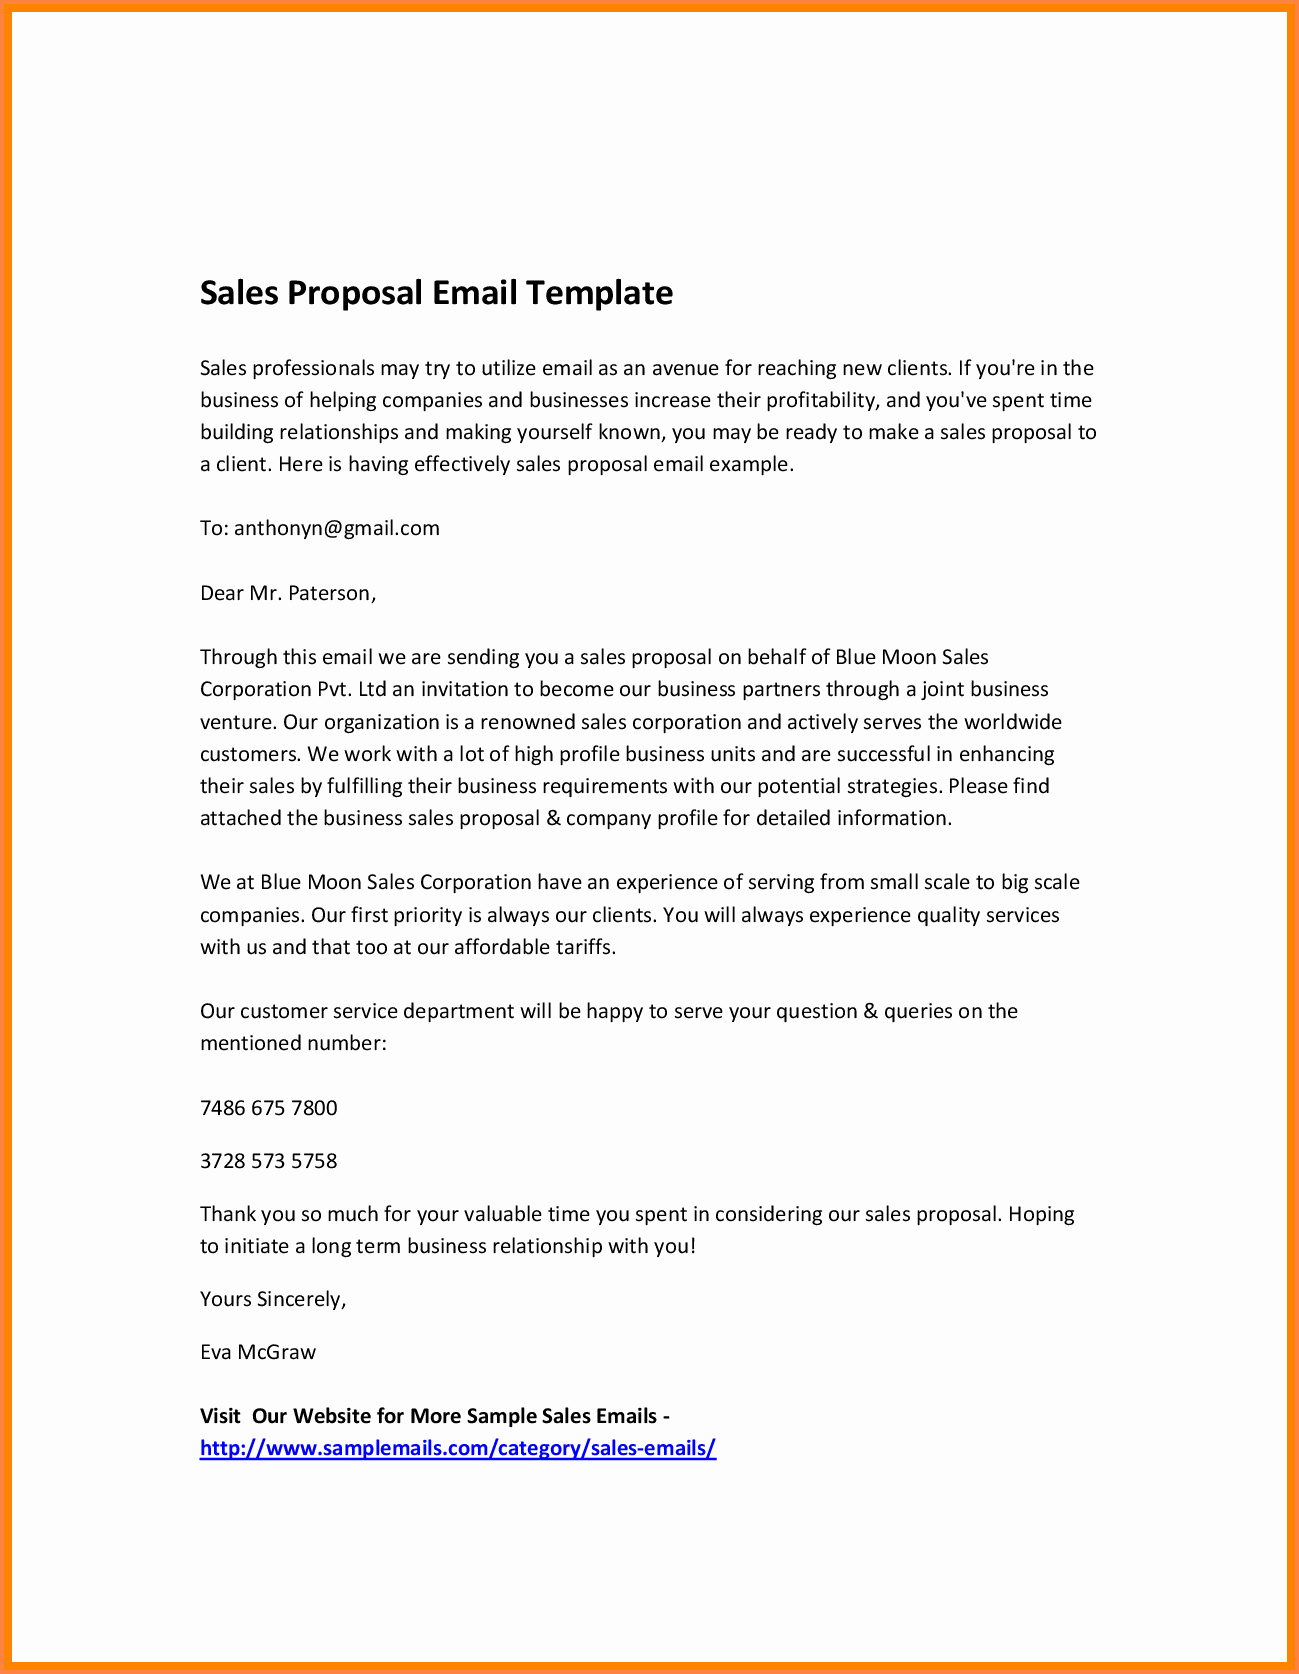 Business Proposal Email Template Luxury 7 Email for Business Proposal with Example